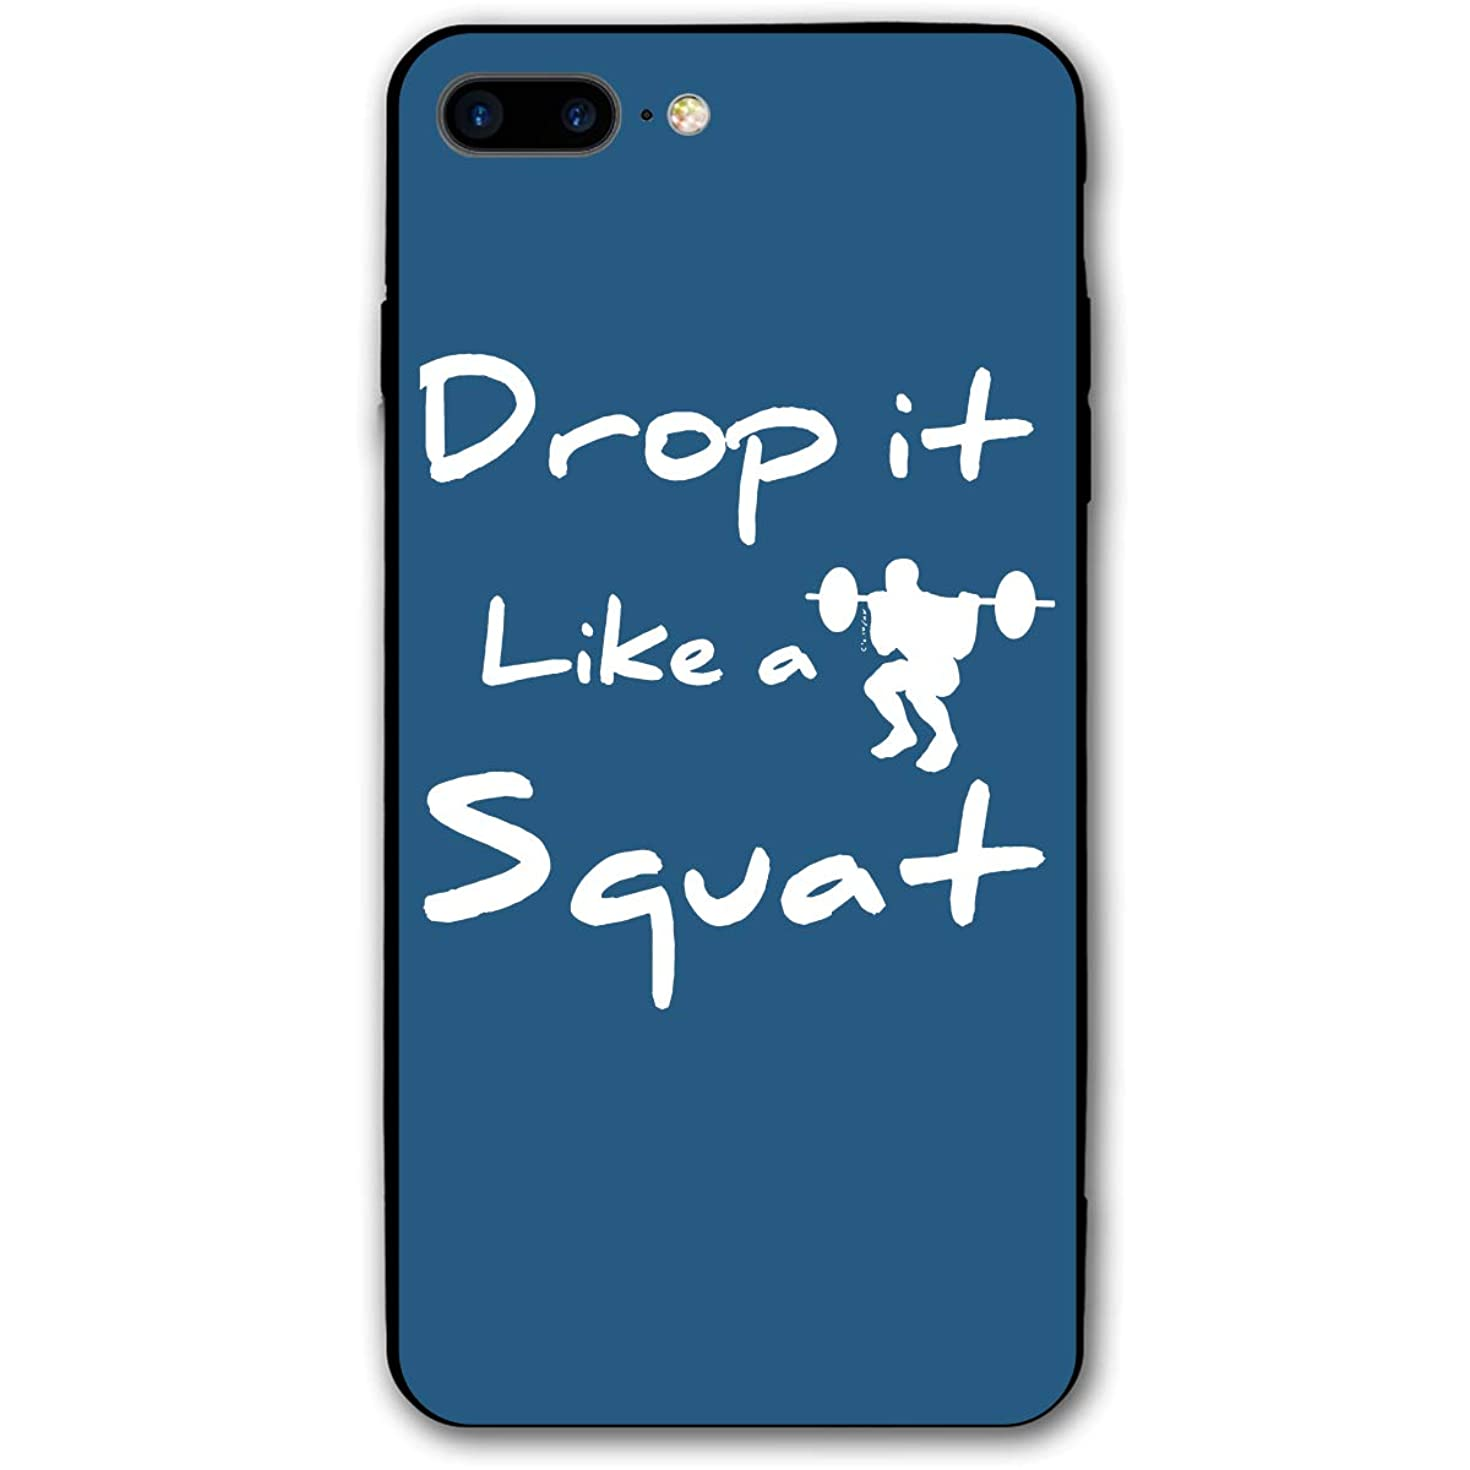 Slim-Fit Ultra-Thin Anti-Scratch Shock Proof Dust Proof Drop It Like Squat Case for iPhone 7/8 Plus